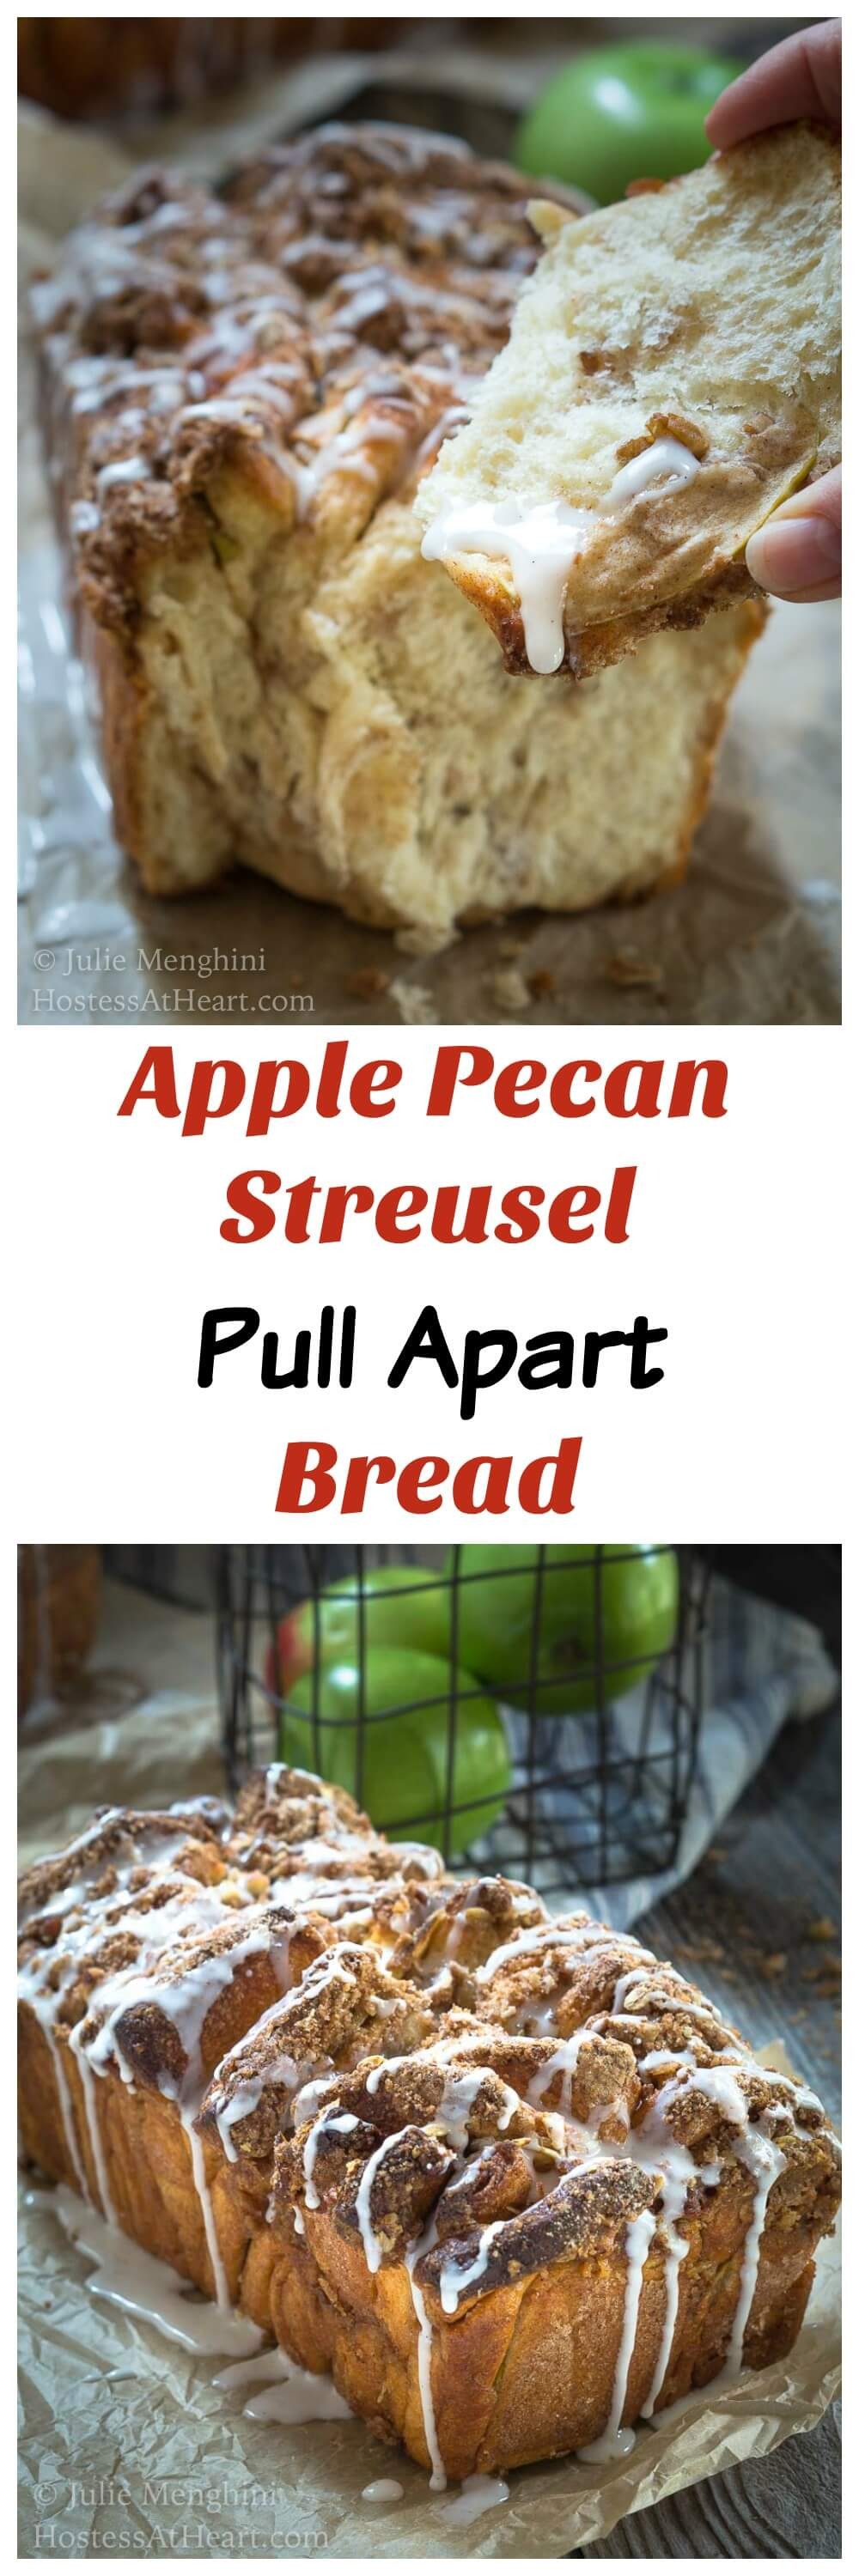 Apple Pecan Streusel Pull Apart Bread makes a delicious addition to your breakfast or with a cup of soup.  It's a no-fuss way to get the taste of a cinnamon roll without all of the work. | HostessAtHeart.com #recipe #homebaked #homebakedbread #baking #BreadBakers